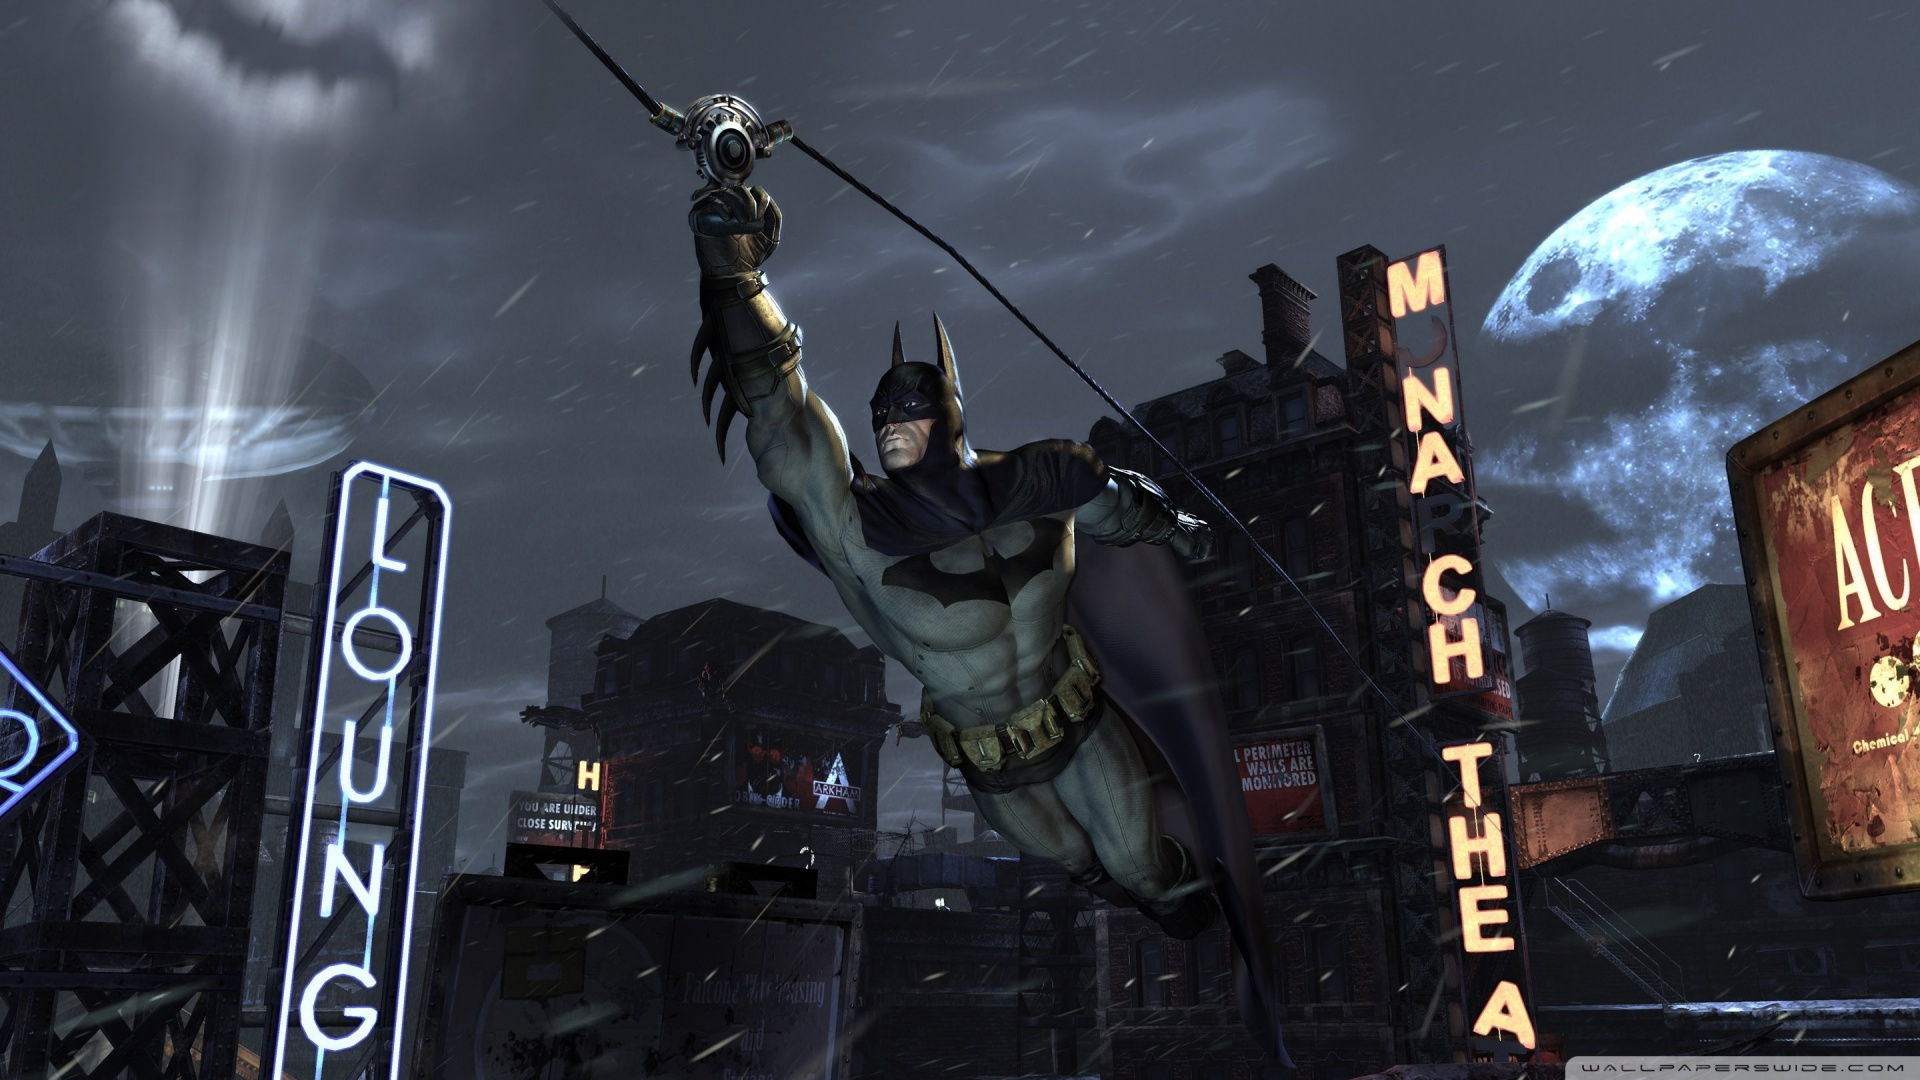 Batman Arkham City 9 Wallpaper 1920x1080 Batman Arkham City 9 1920x1080